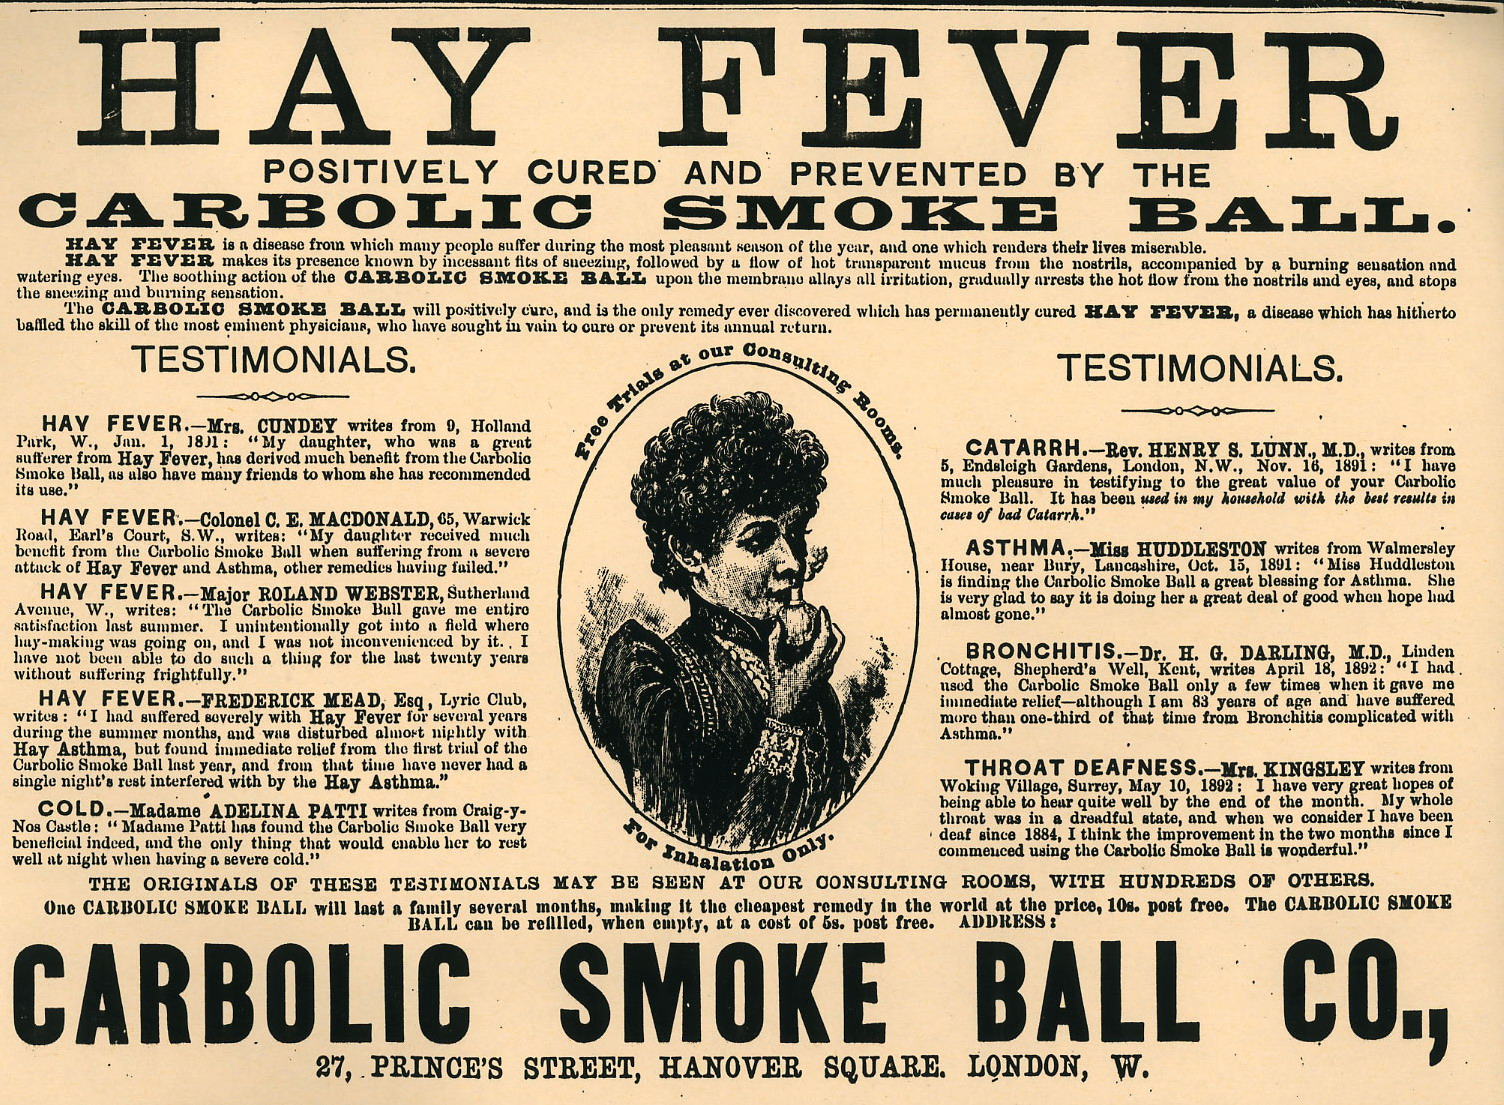 carlill v carbolic smoke ball 1893 A unilateral offer is deemed to be accepted as soon as the offeree has performed a specific act which was asked in the initial offer.